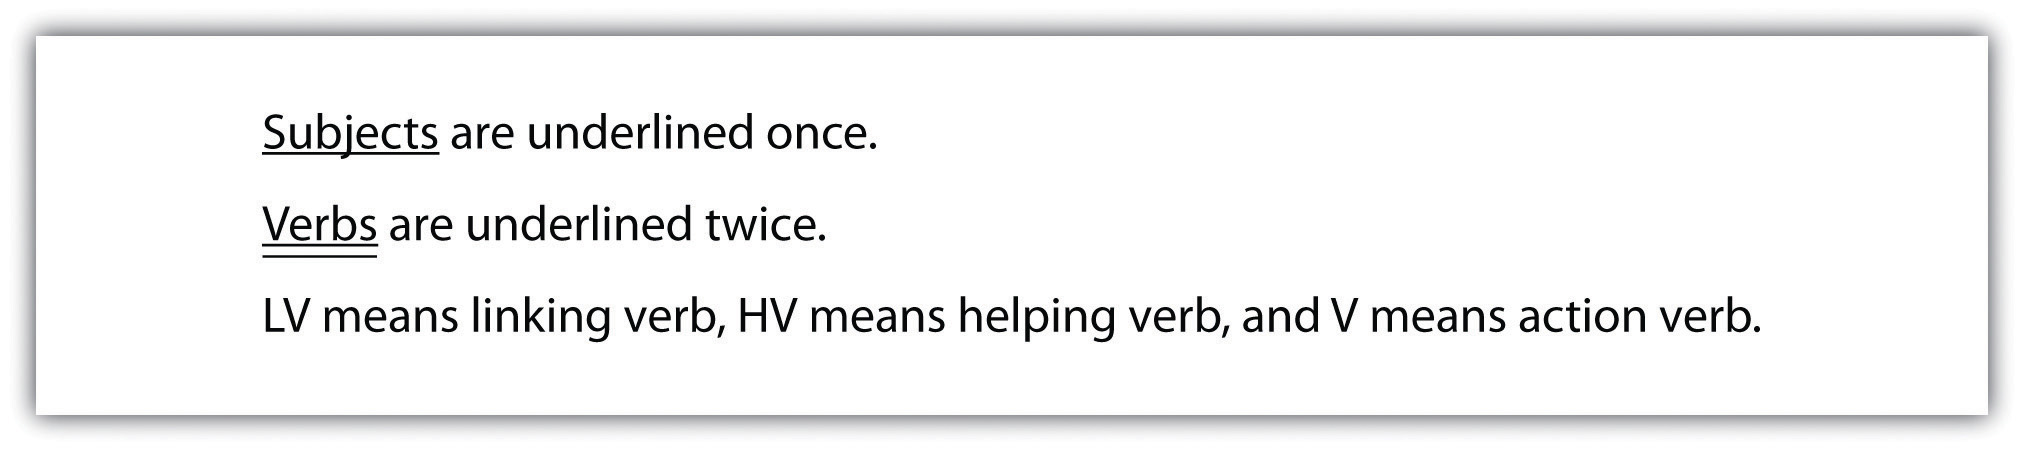 writing basics what makes a good sentence tip